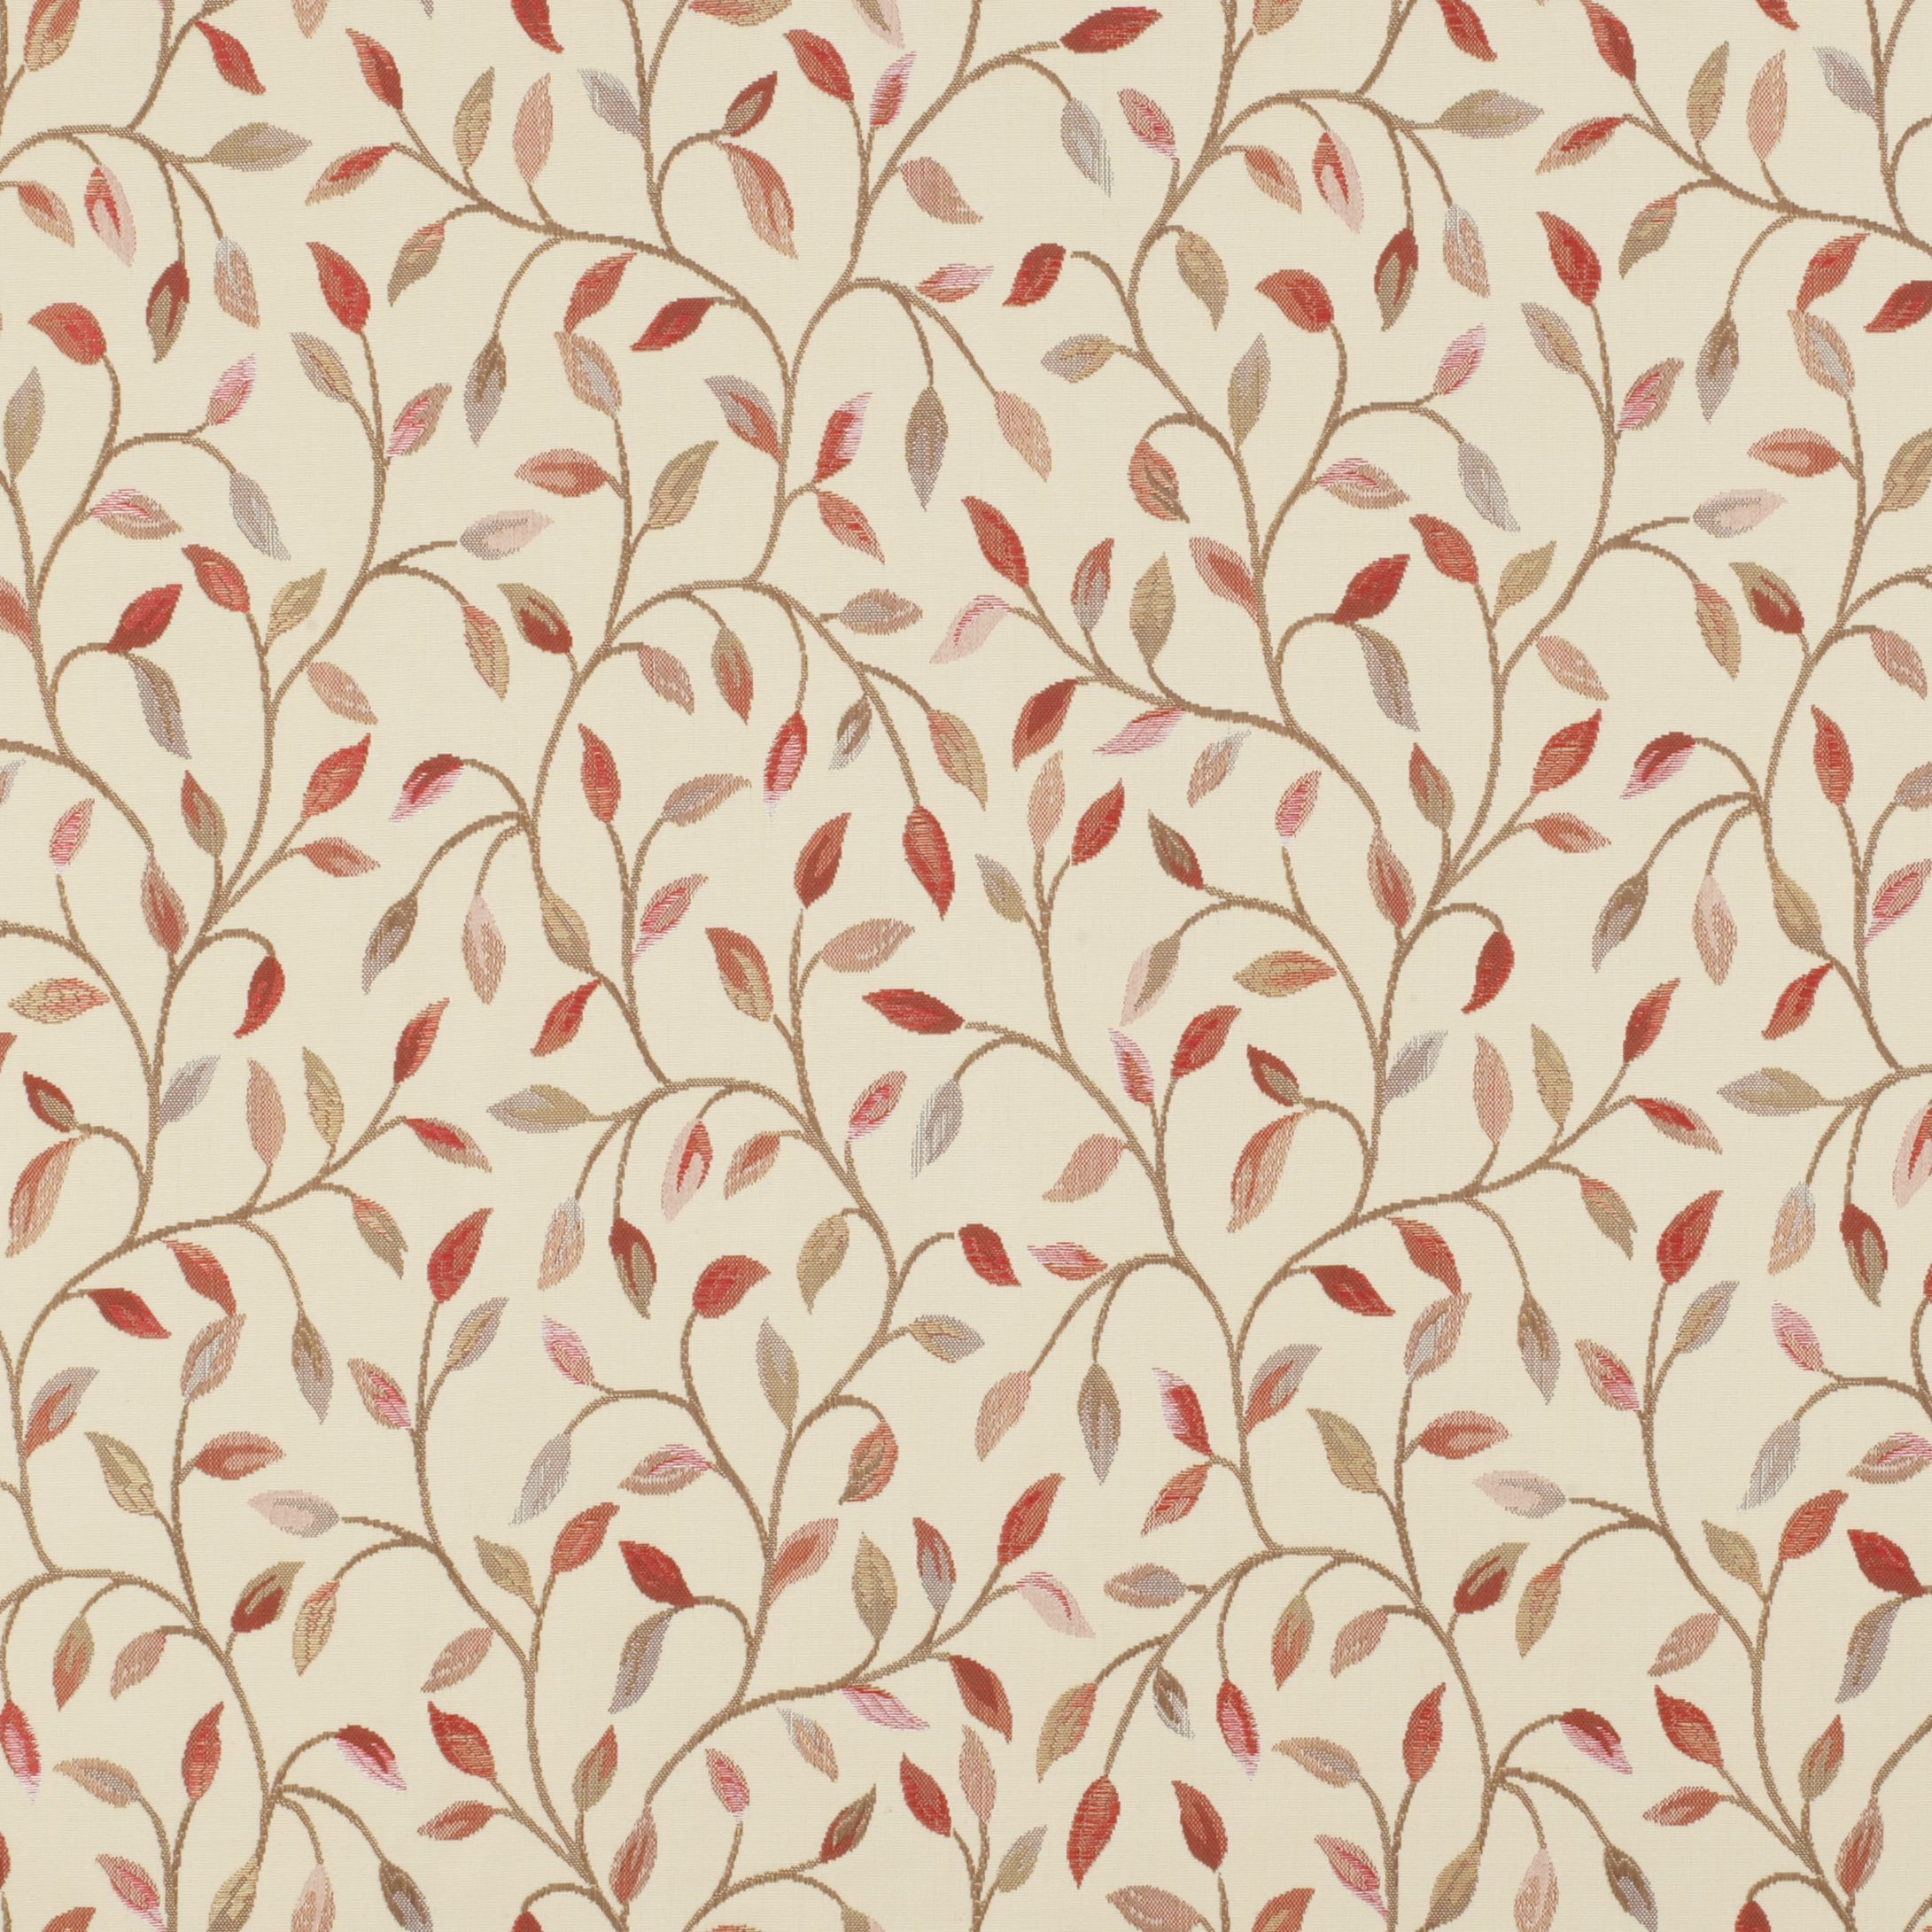 Voyage Cervino Furnishing Fabric Red Nut In 2020 Made To Measure Curtains Curtains Or Roman Blinds Curtains